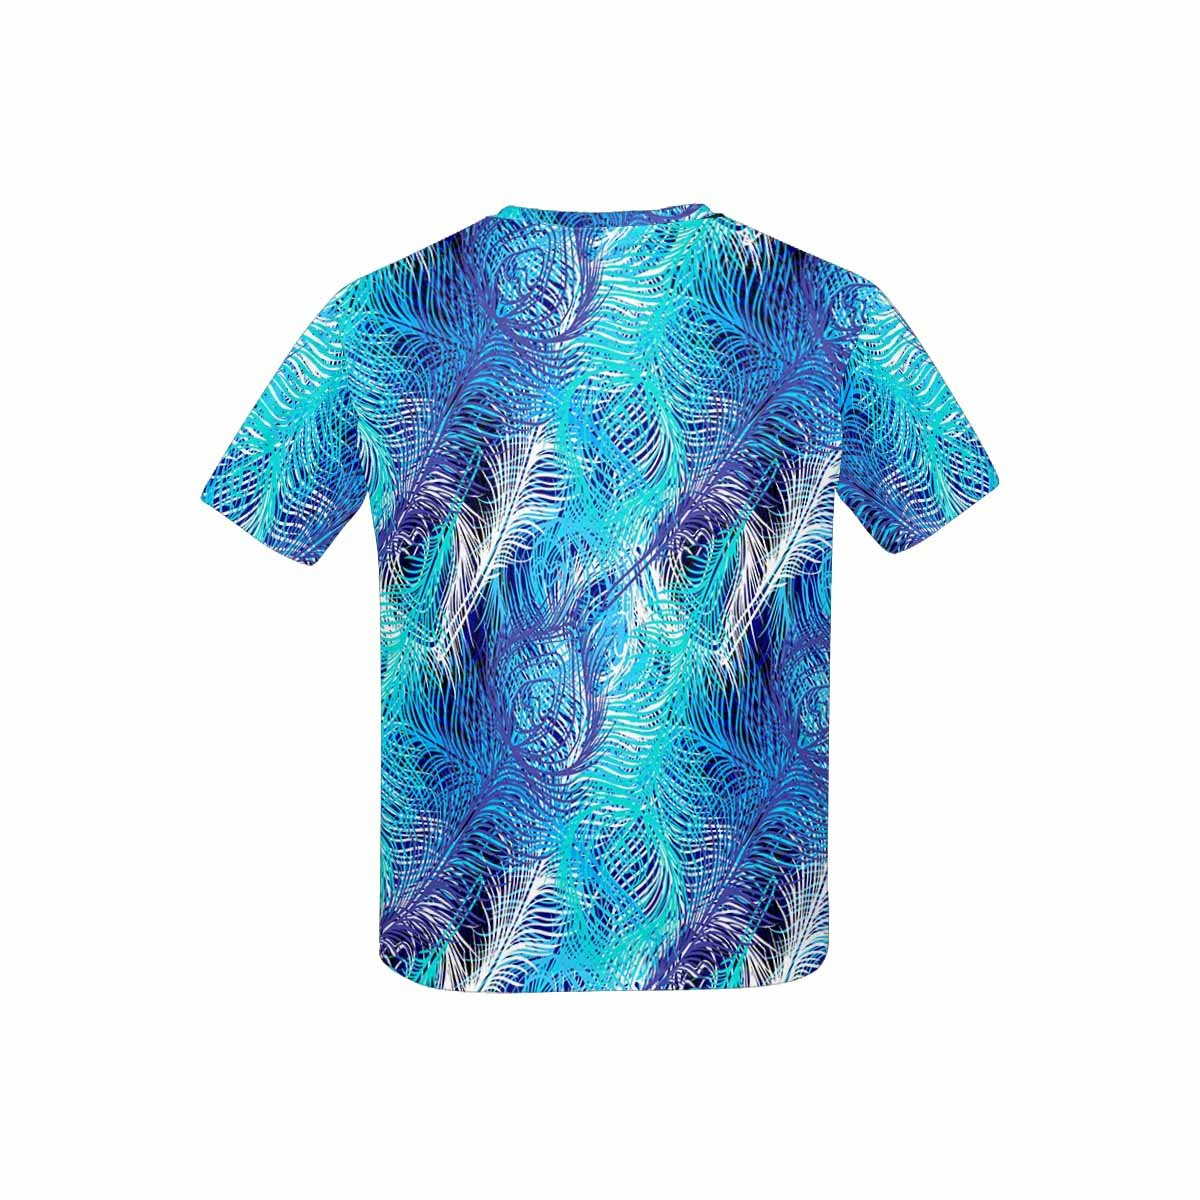 XS-XL INTERESTPRINT Kids T-Shirts Colorful Peacock Feathers